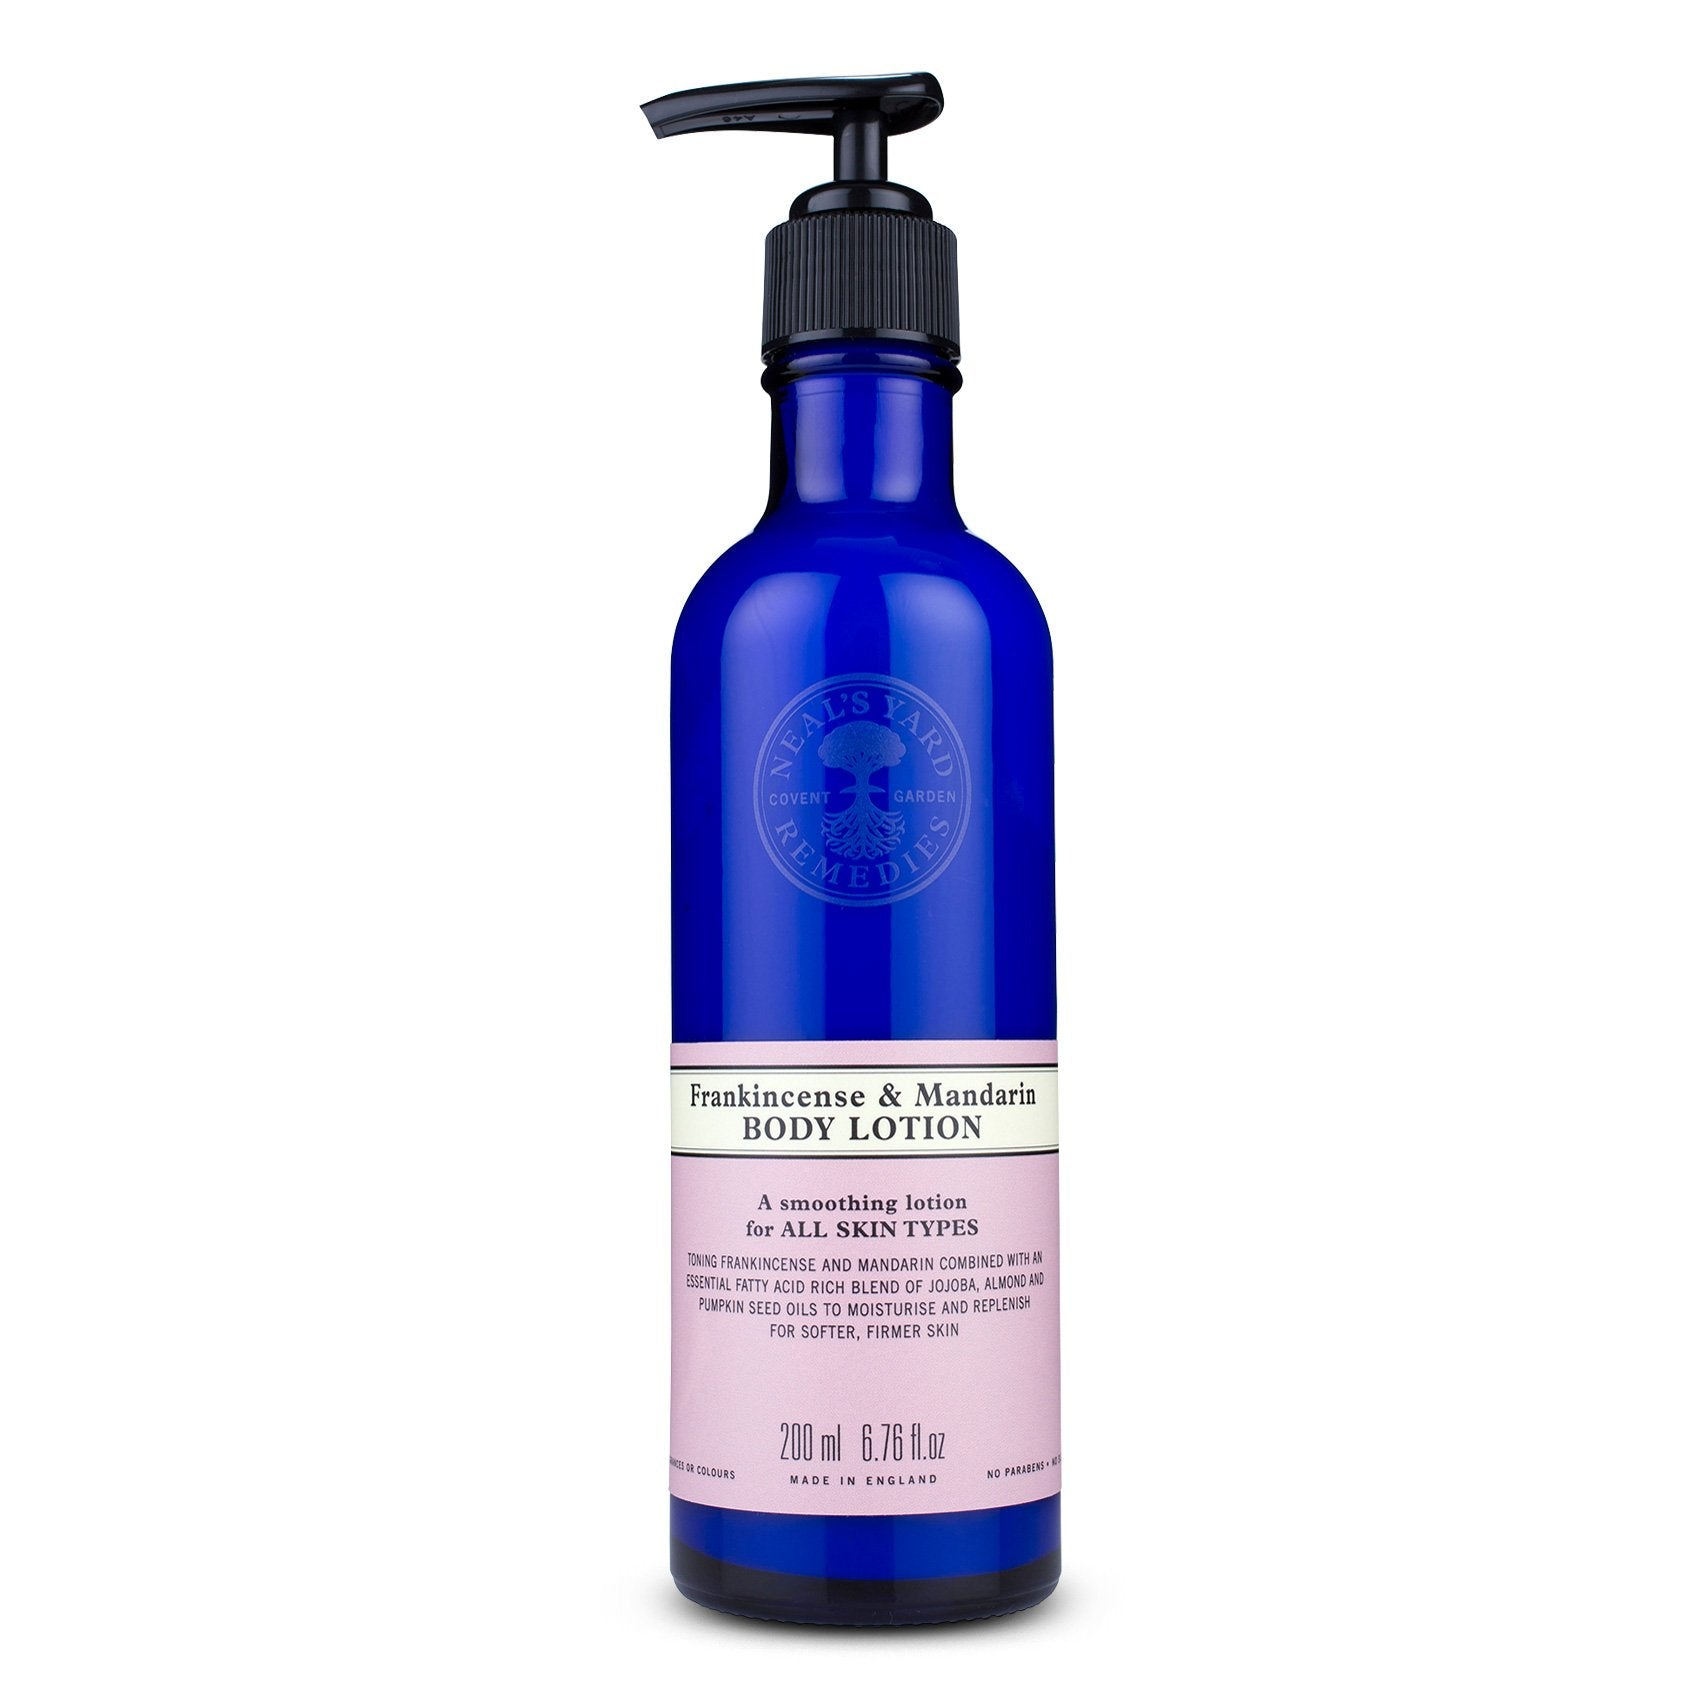 Frankincense and mandarin body lotion